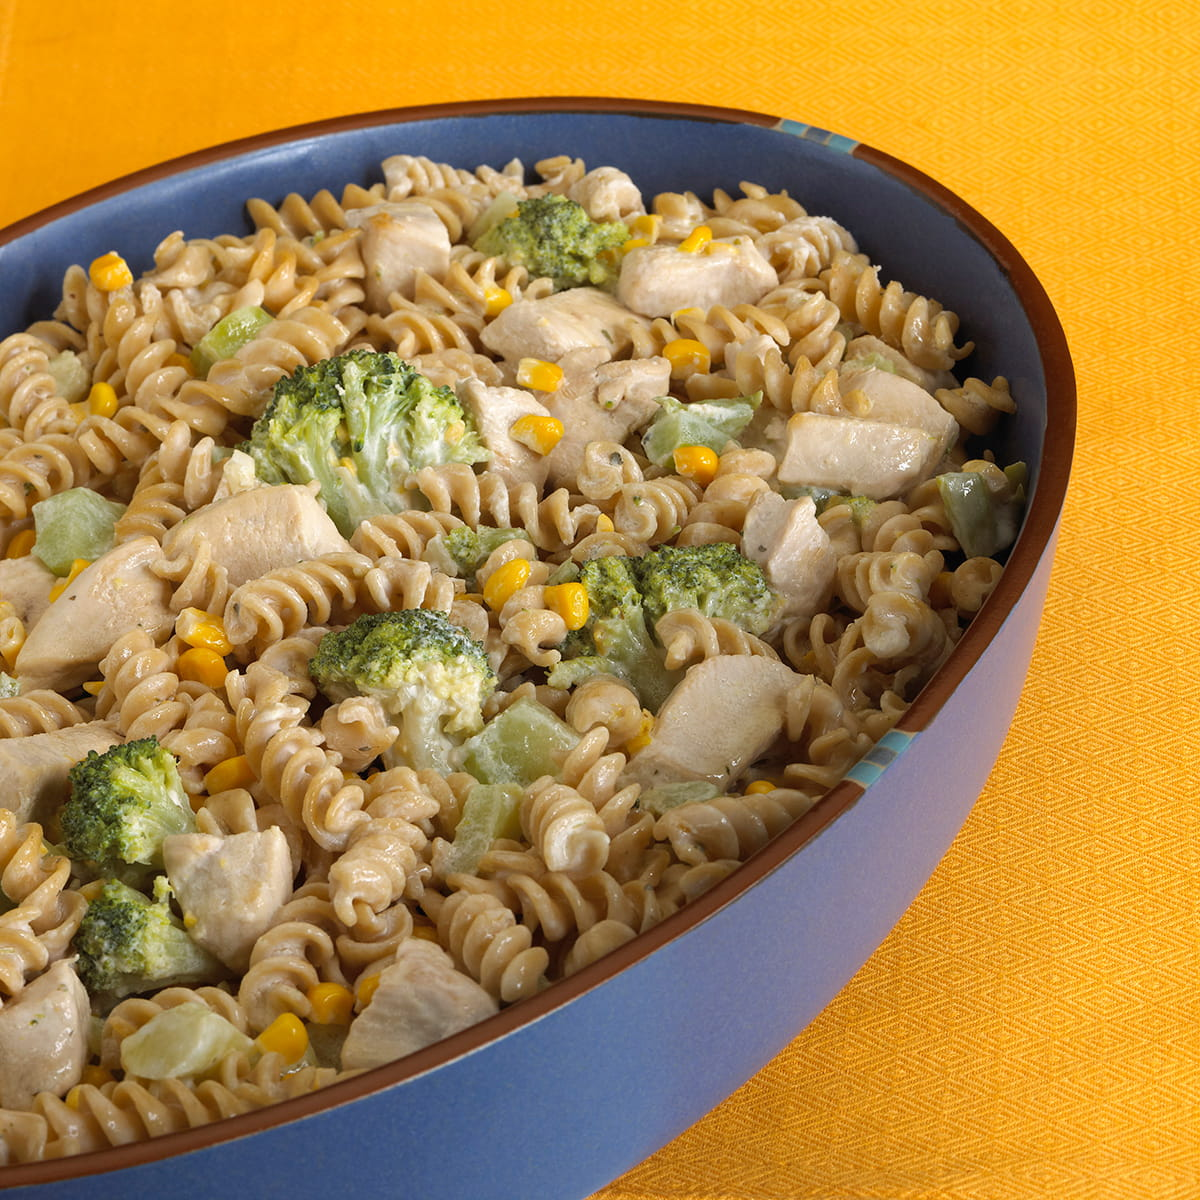 Creamy Chicken-Broccoli Casserole With Whole Wheat Pasta  American Heart Association -9005